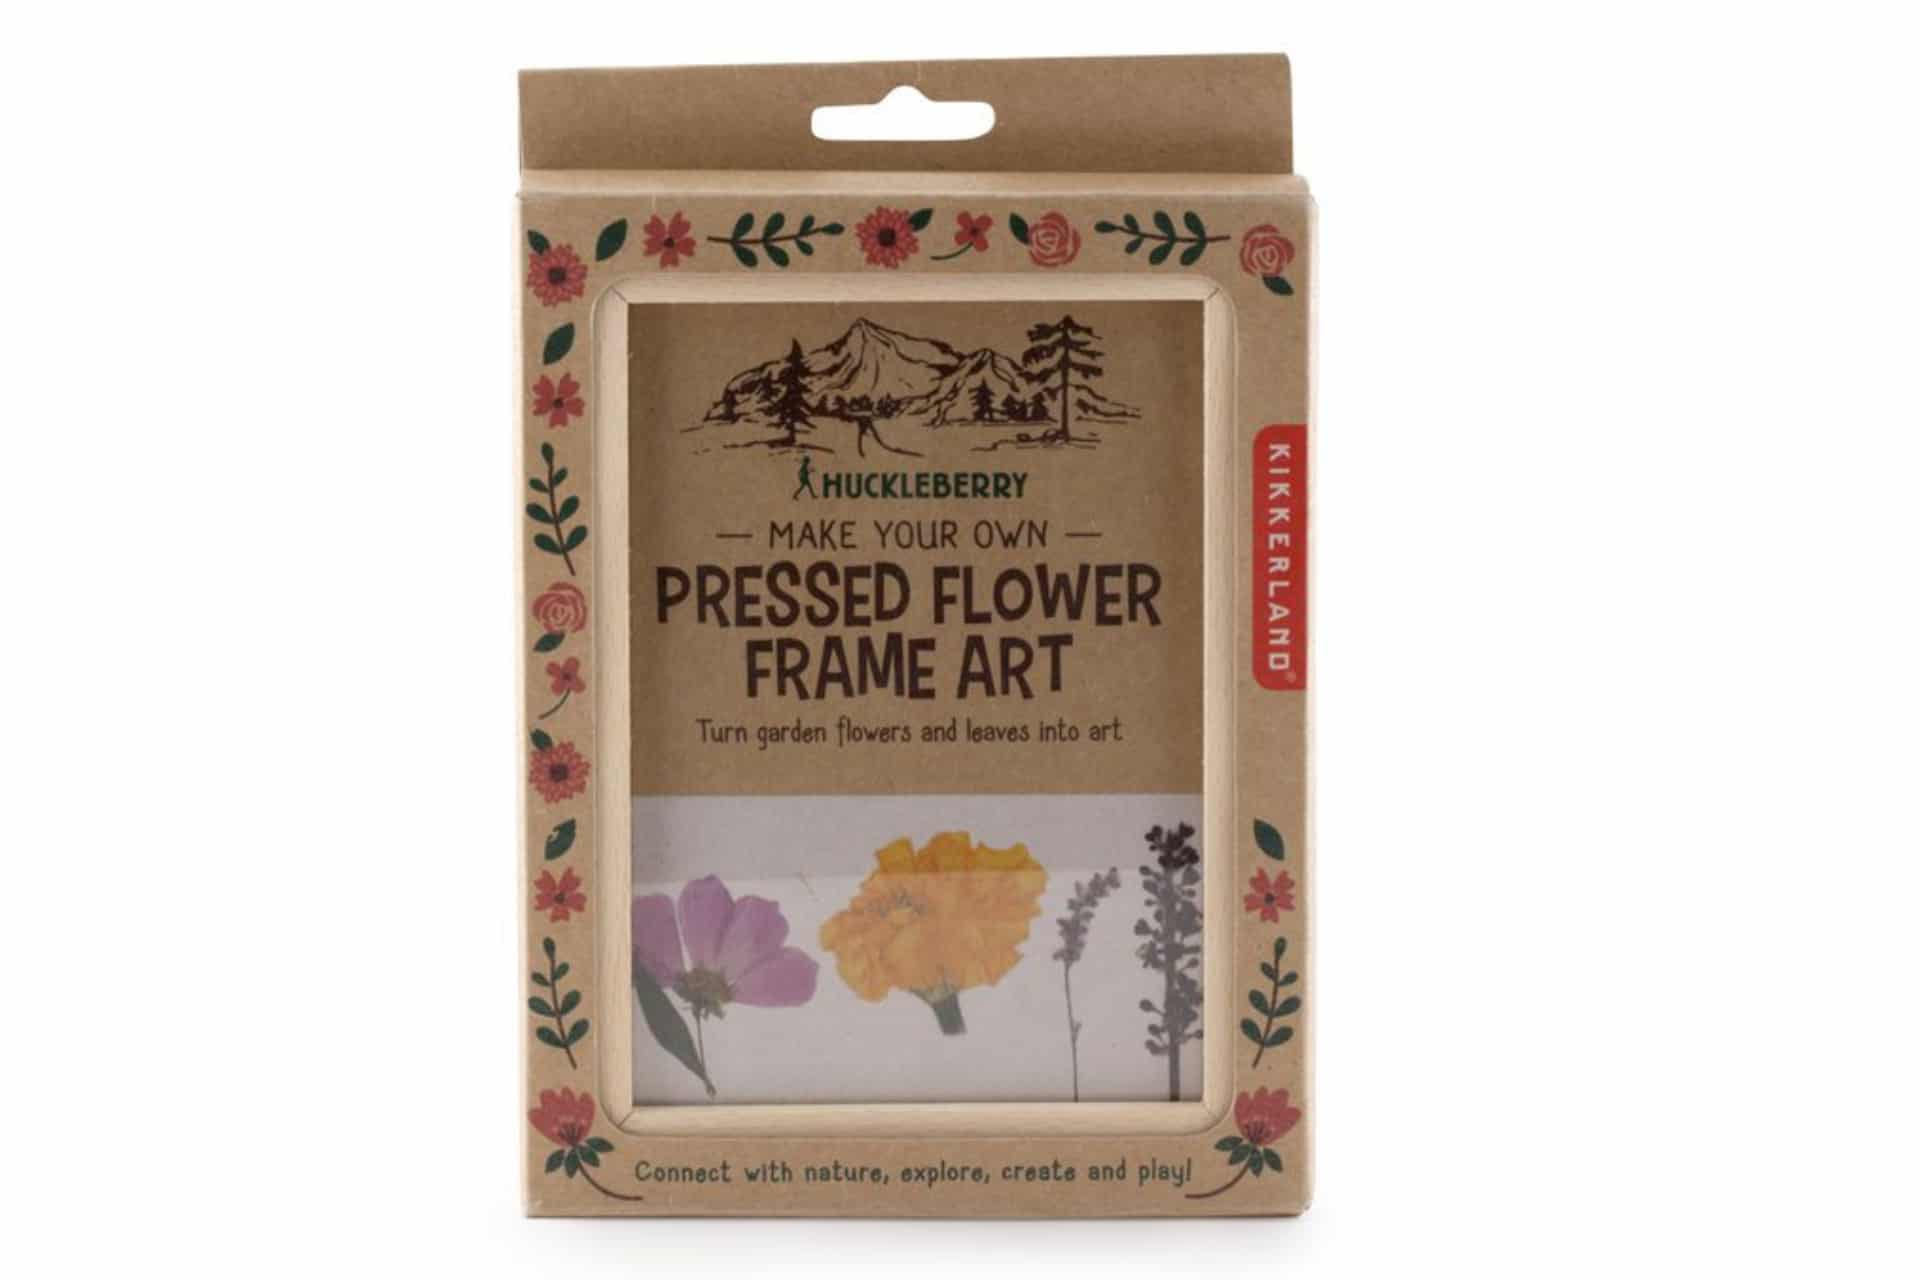 craft kit with frame for pressed flowers